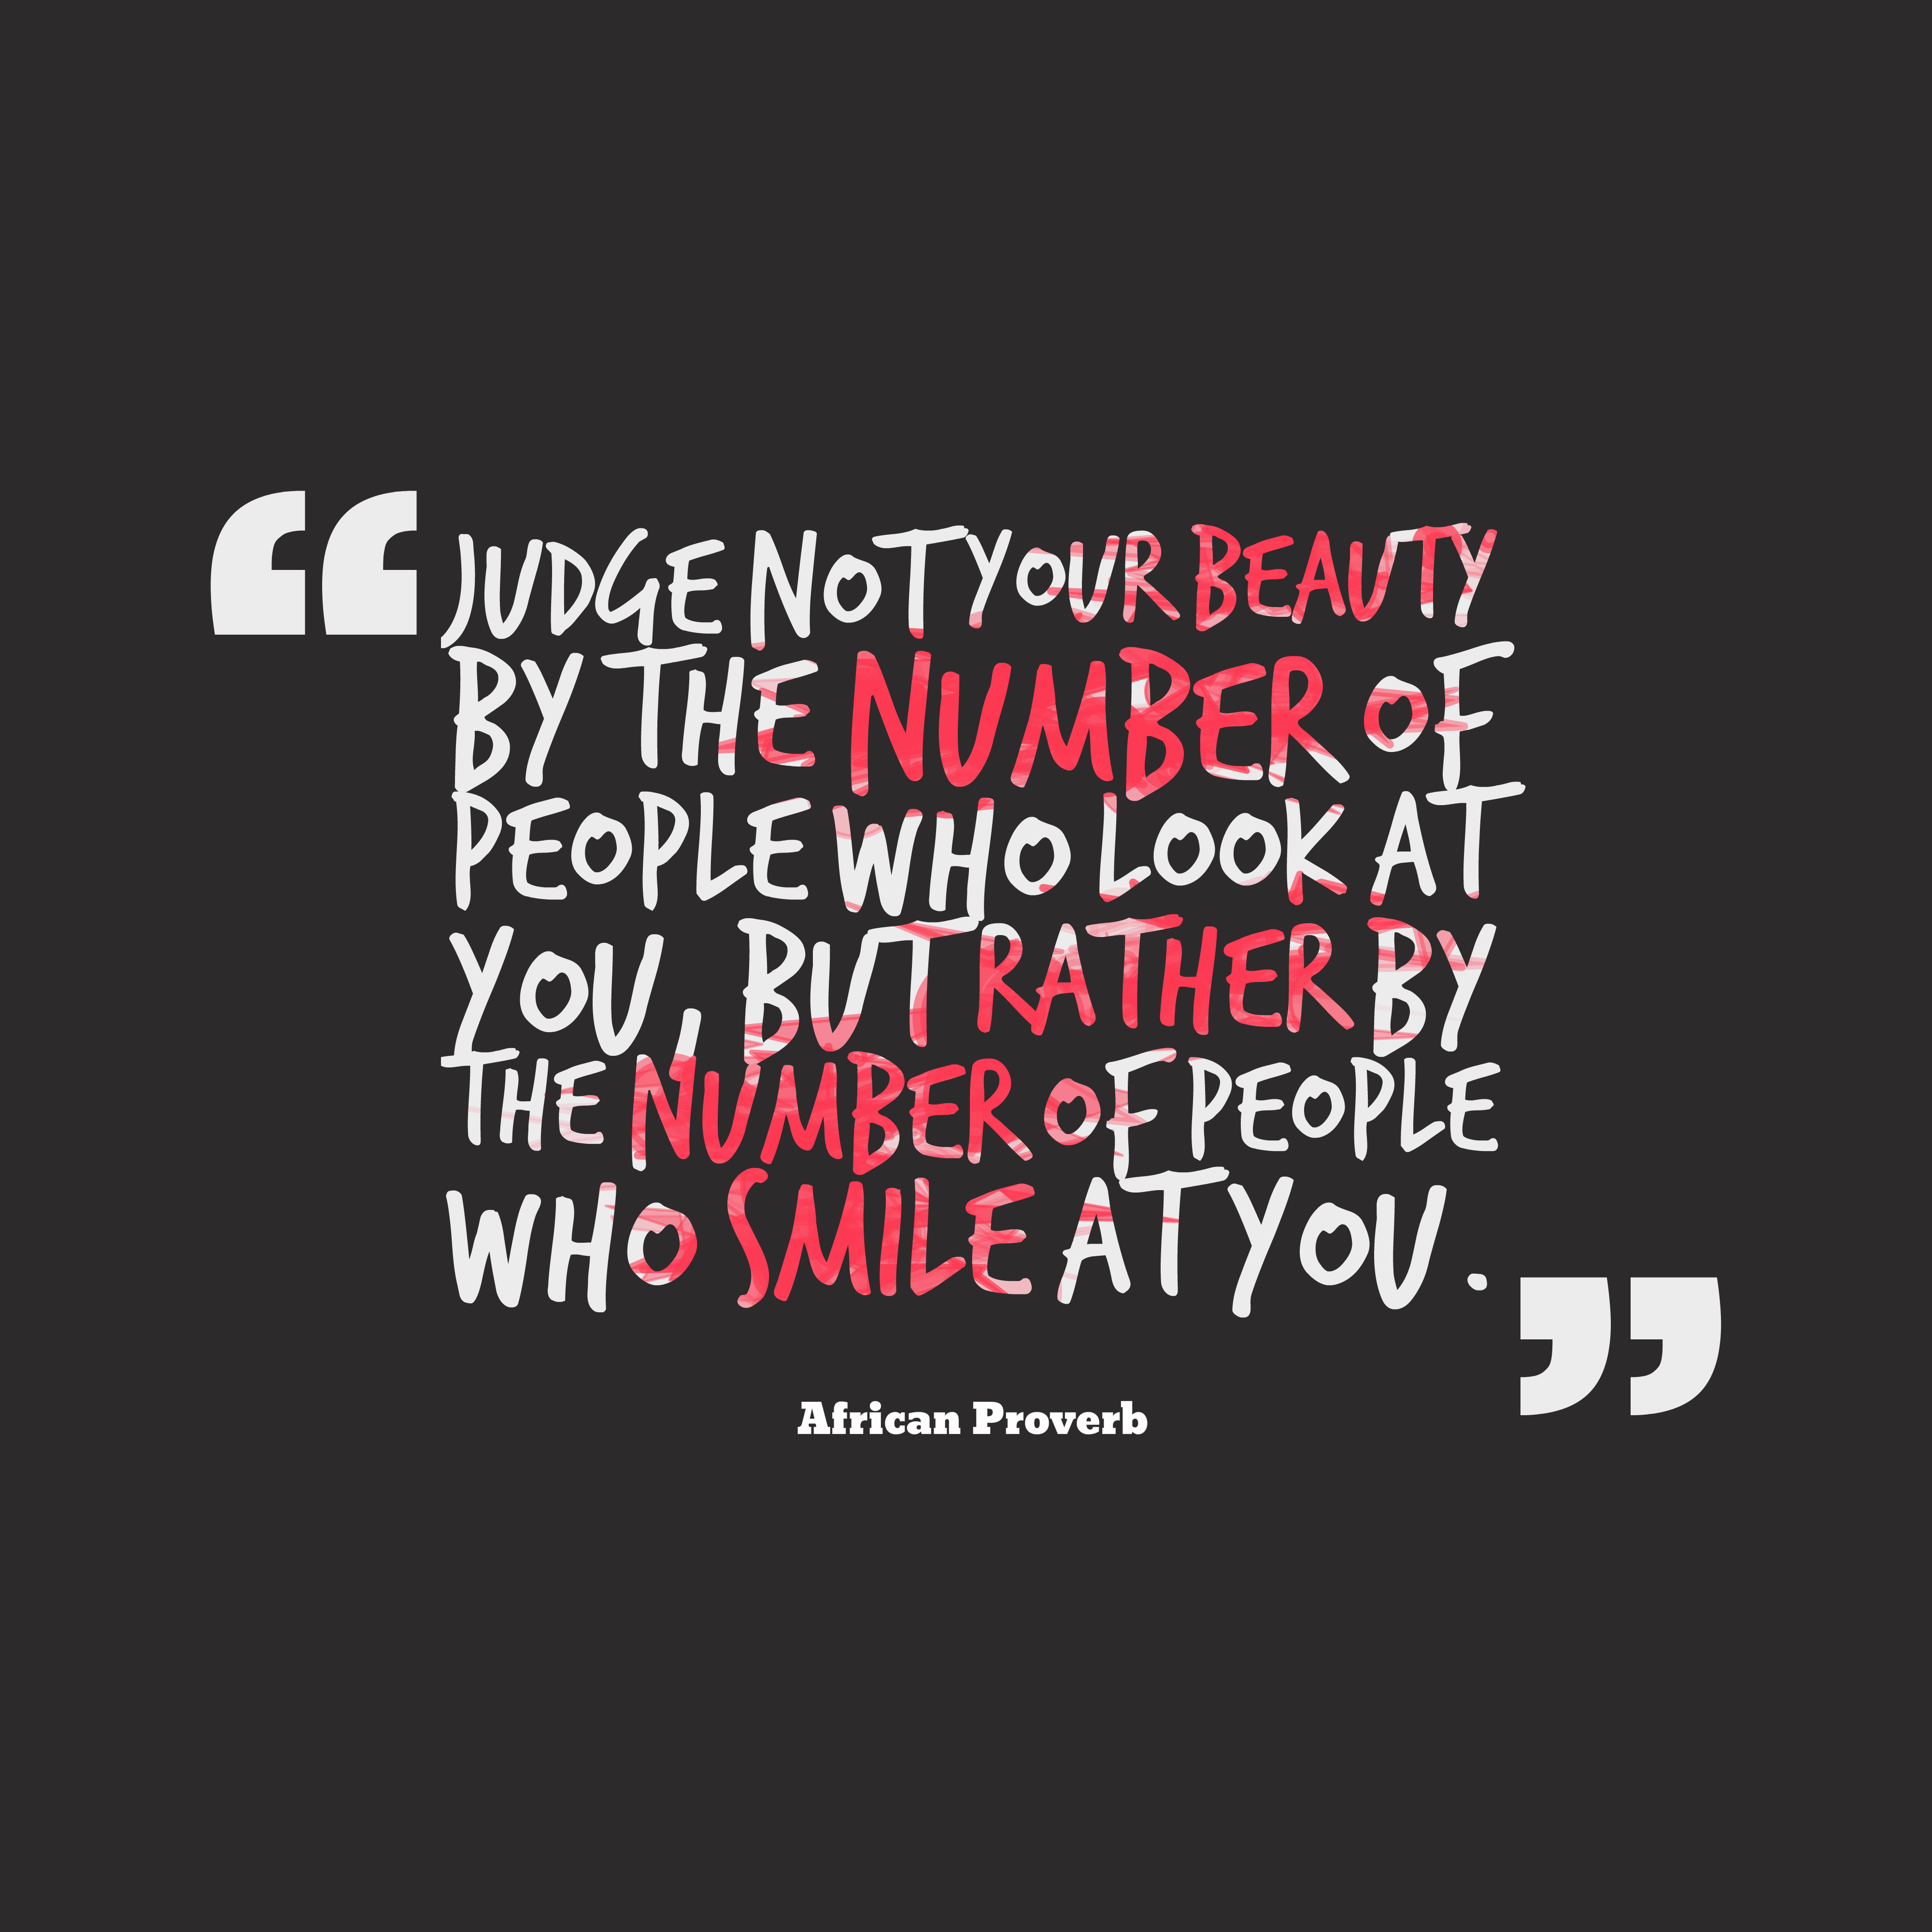 African Wisdom About Beauty